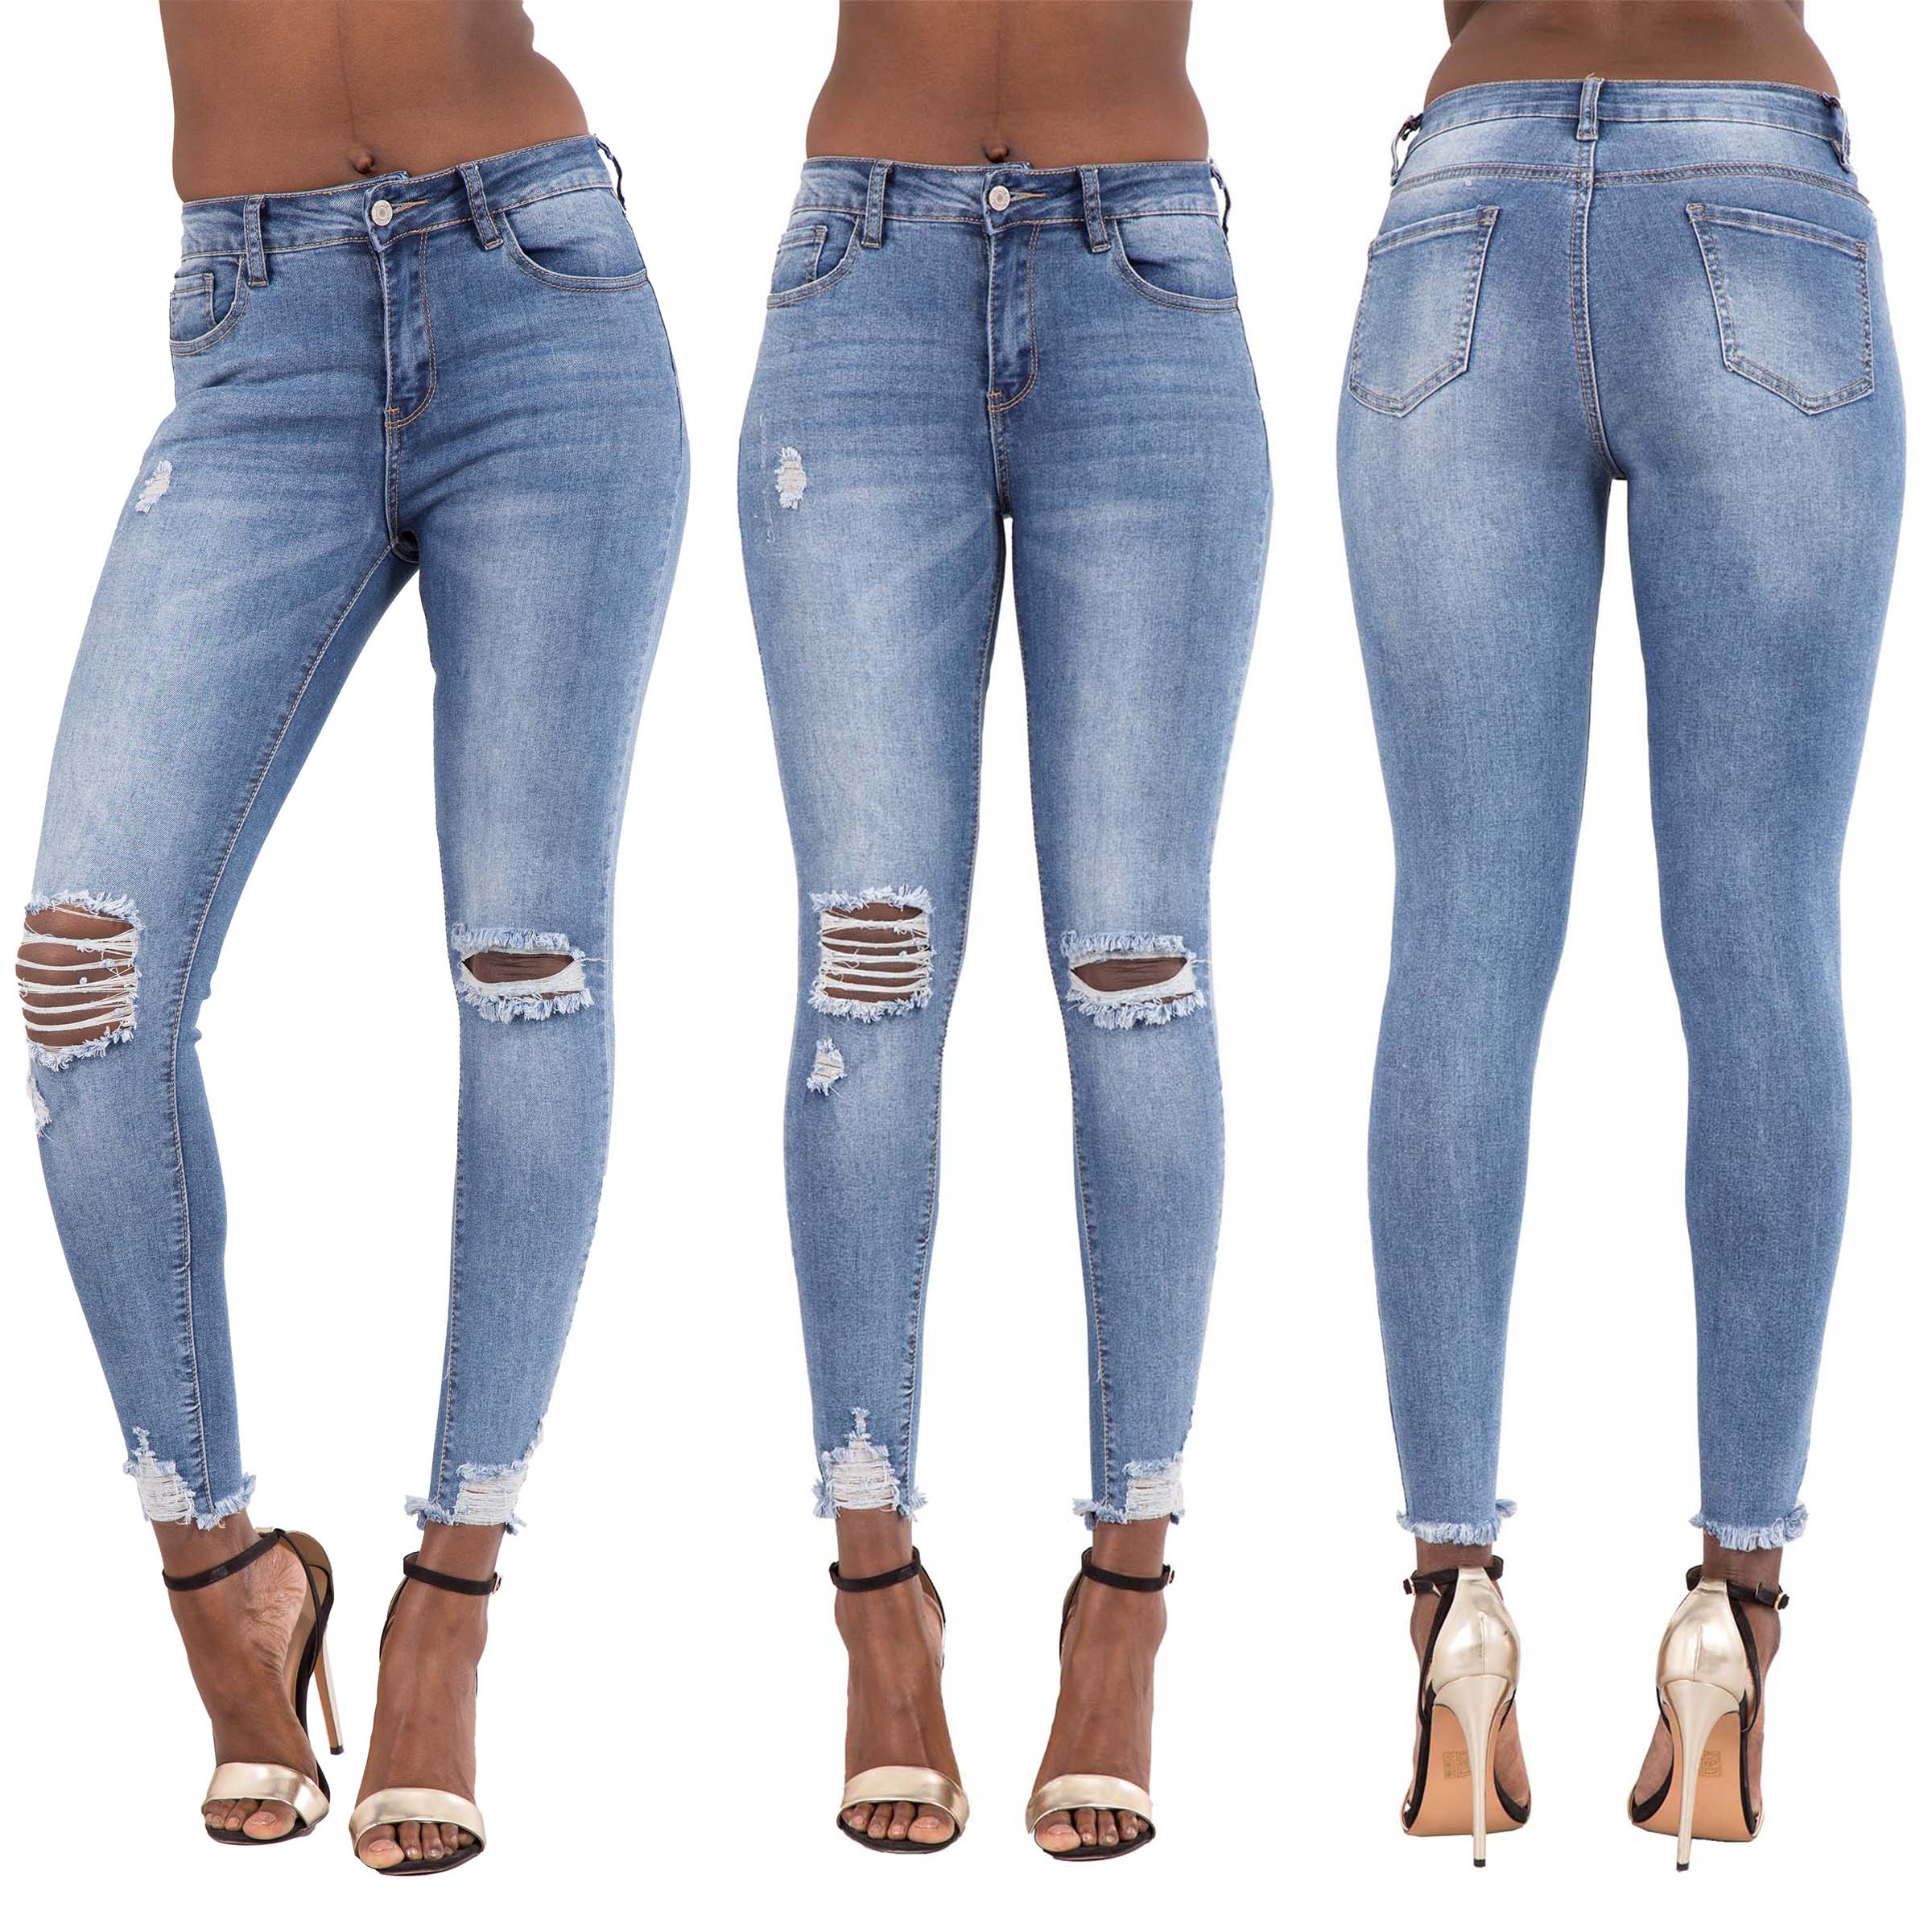 NEW-WOMENS-LADIES-SKINNY-FIT-RIPPED-JEANS-FADED-STRETCHY-DENIM-SIZE-6-14